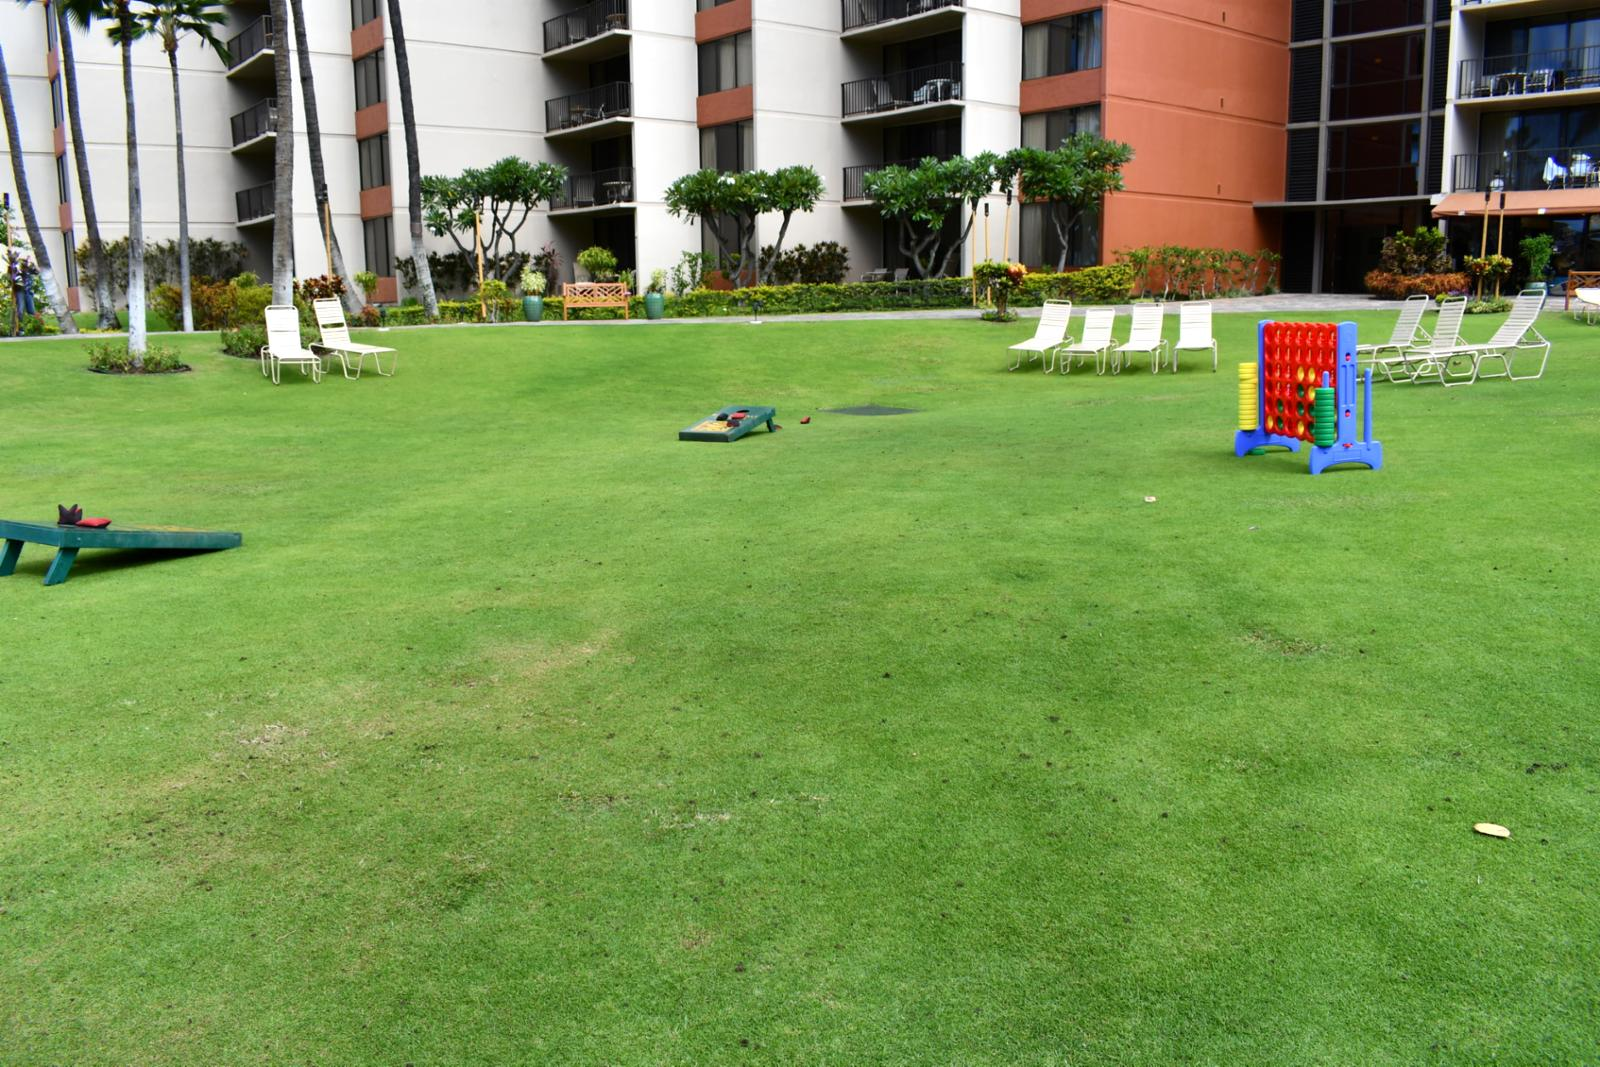 Grand lawn, perfect for family games and sun bathing